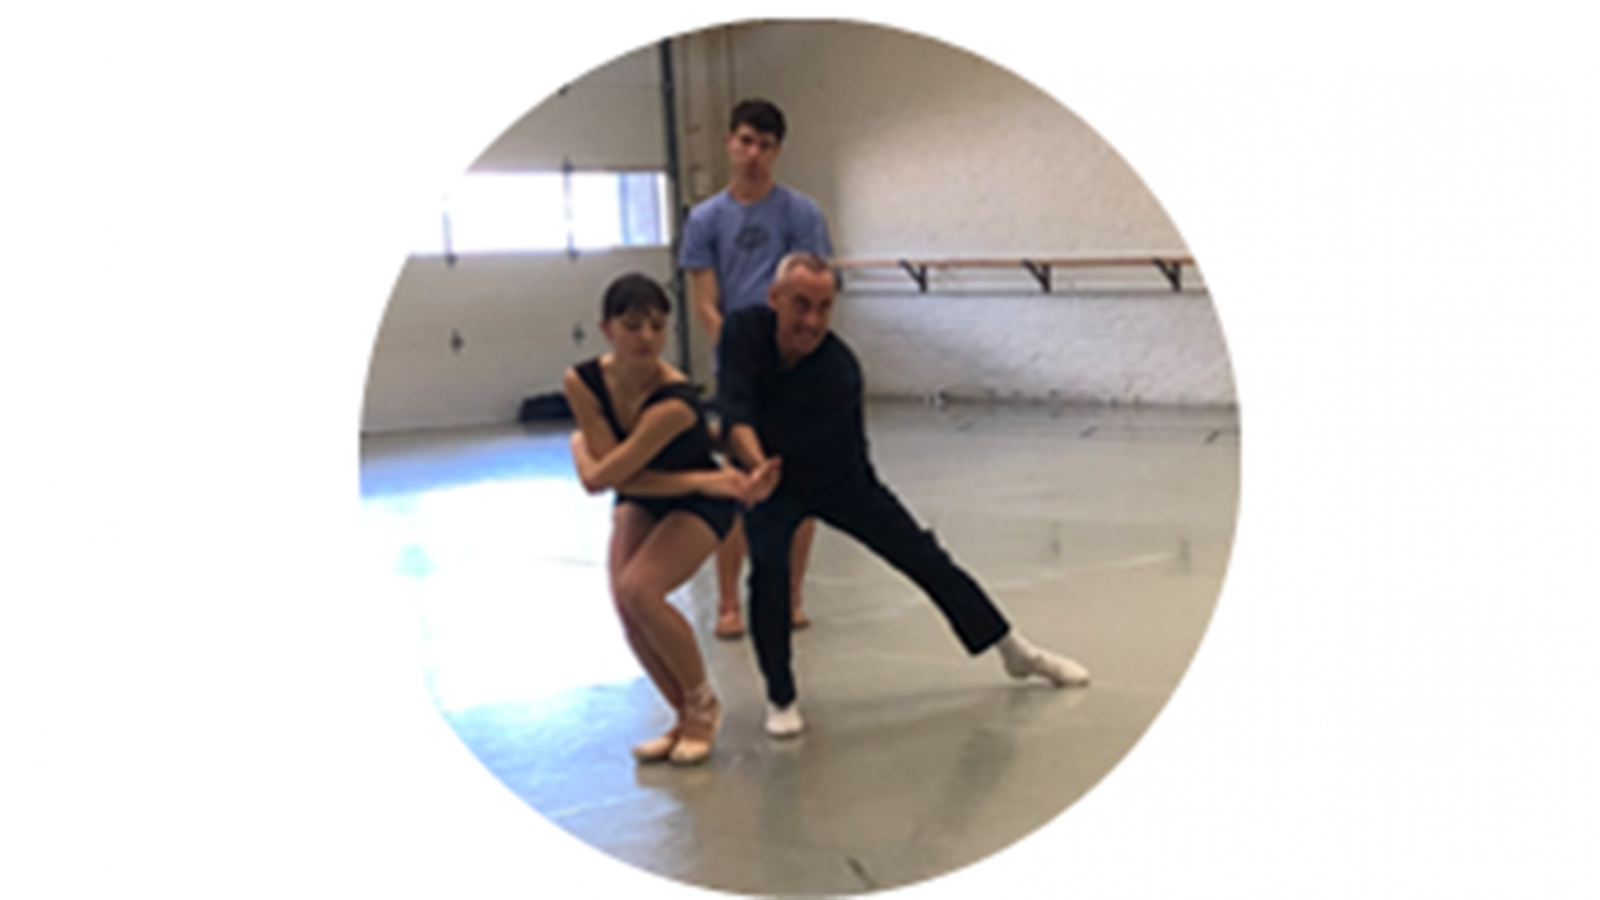 Paul Boos, © THE George Balanchine Trust Répétiteur, coaching BalletMet 2 dancers Catherine Stoehr and Rorey Fraser in September 2019